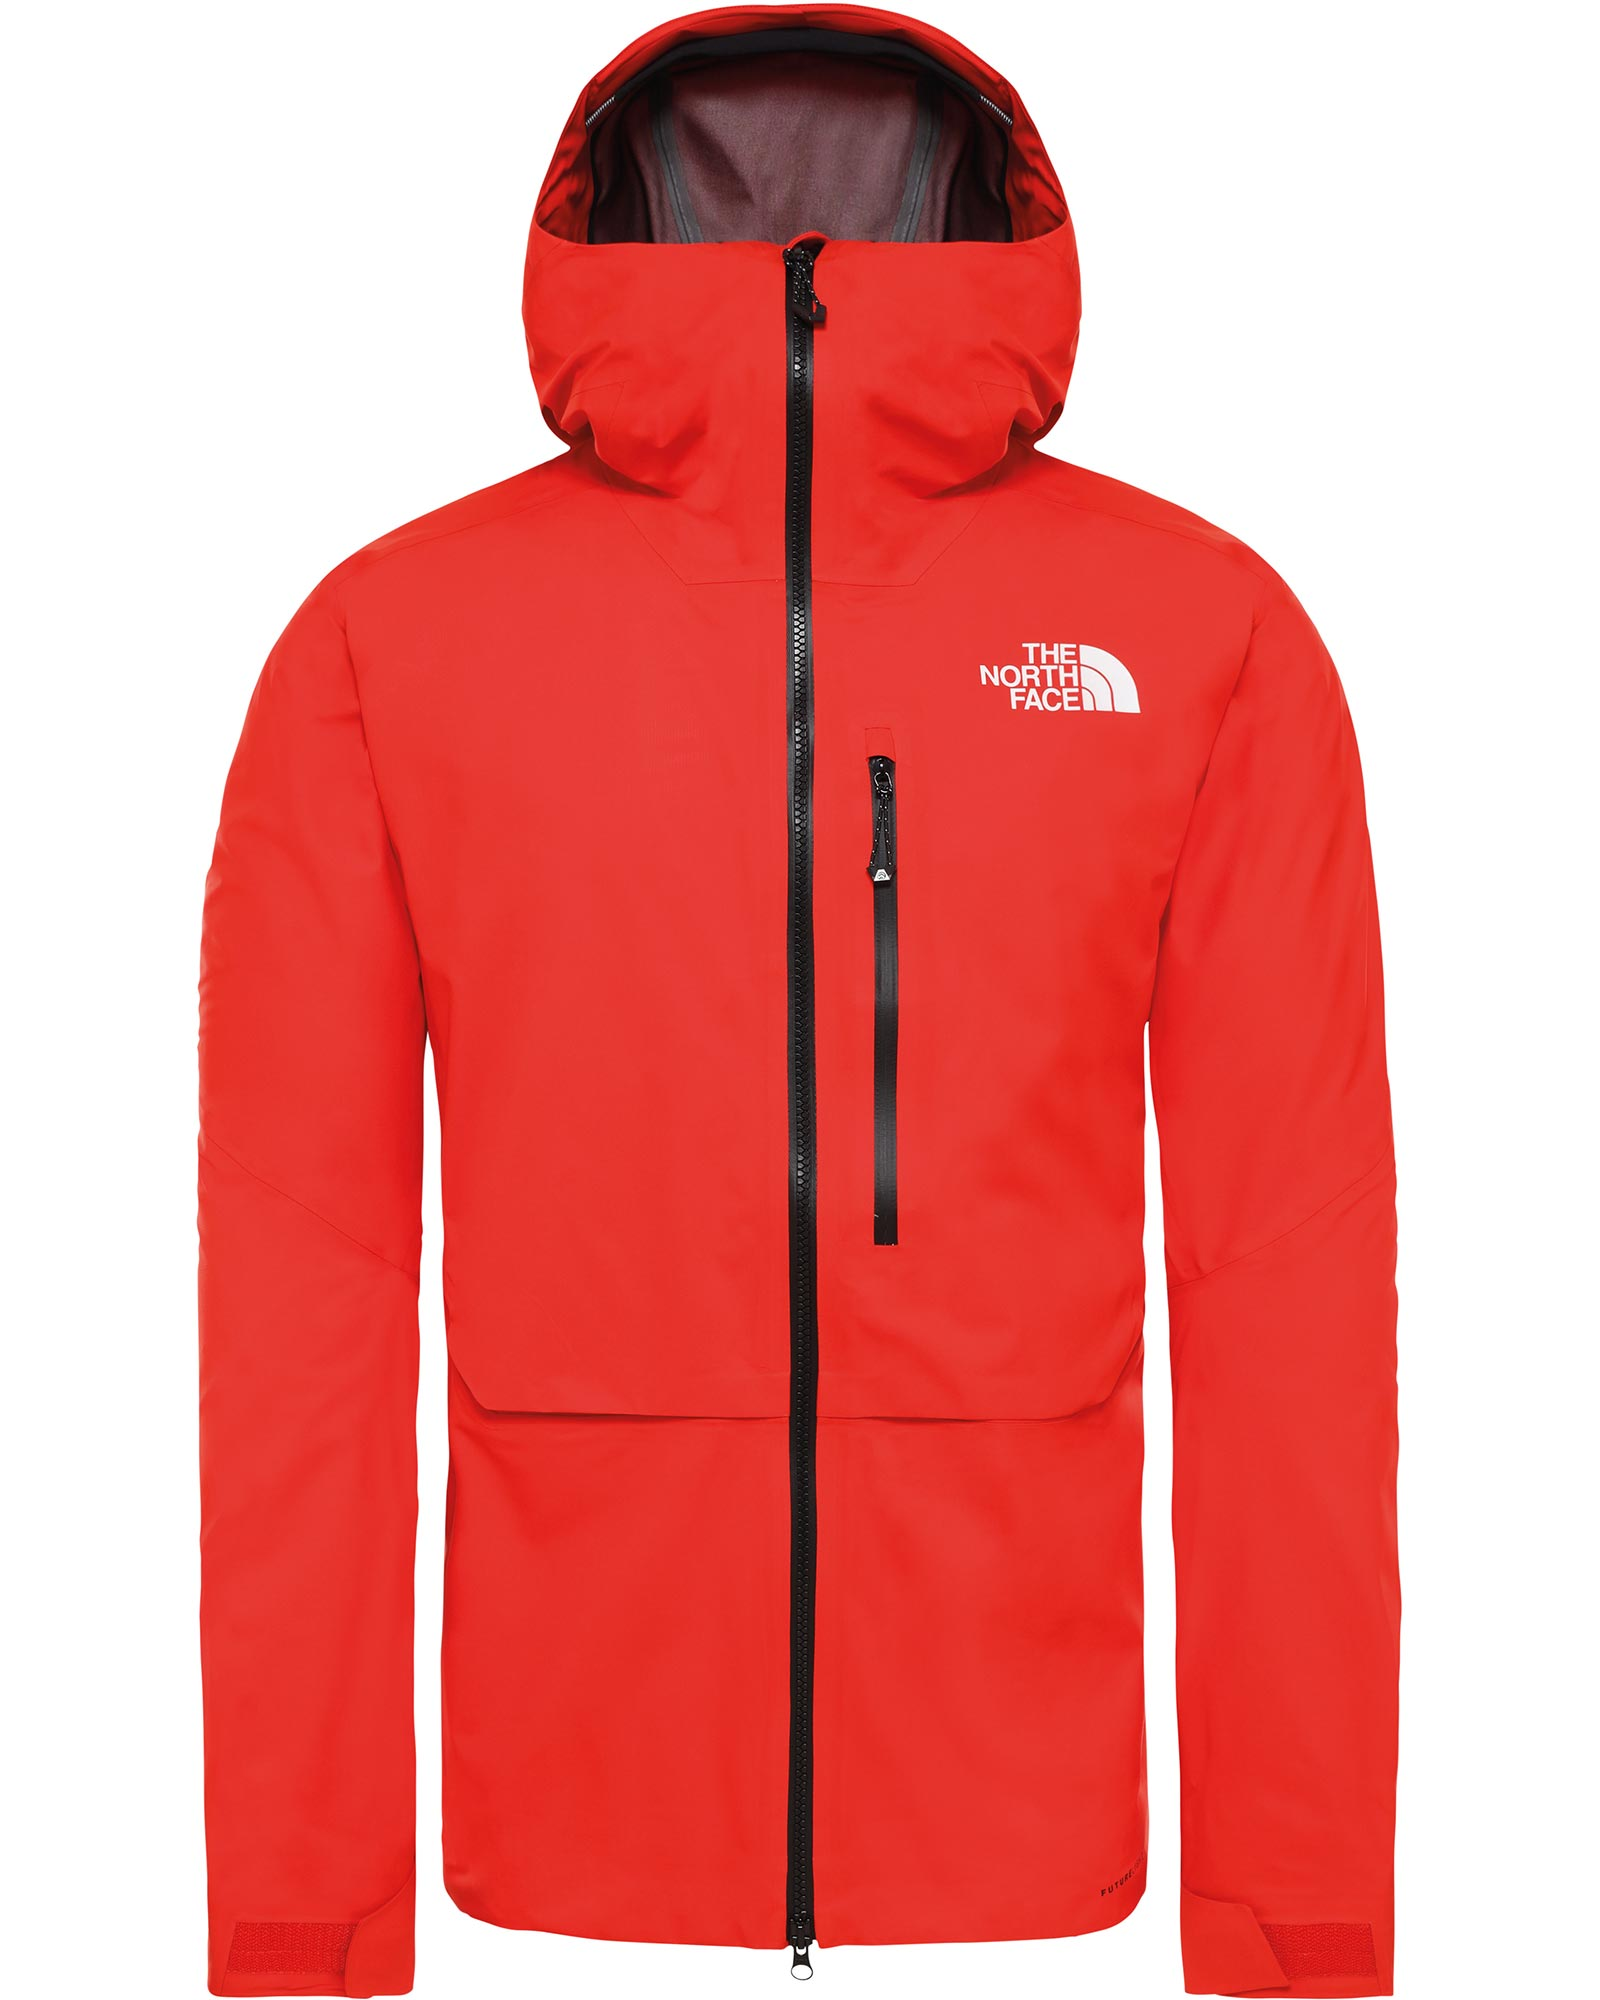 The North Face Men's Summit Series L5 LT FUTURELIGHT Jacket 0